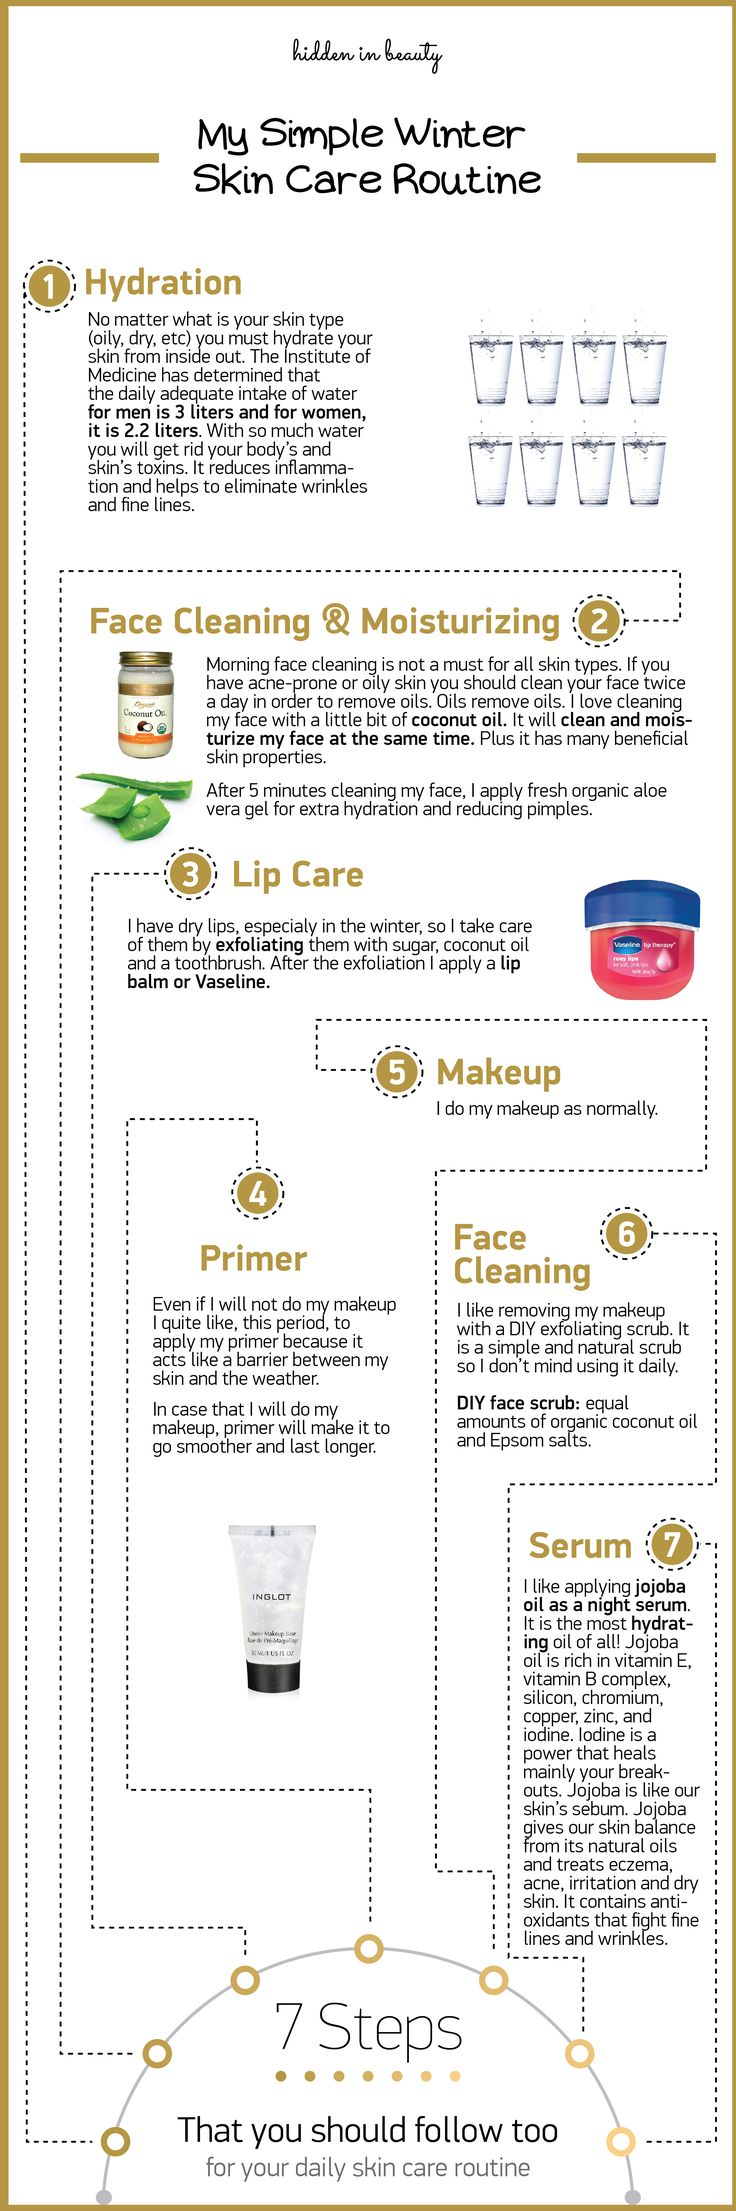 I have created for you a simple infographic of my winter skin care routine in 7 simple steps. Scroll down to read and follow as many as you like. //p260263.clksite.com/adServe/banners?tid=260263_50…